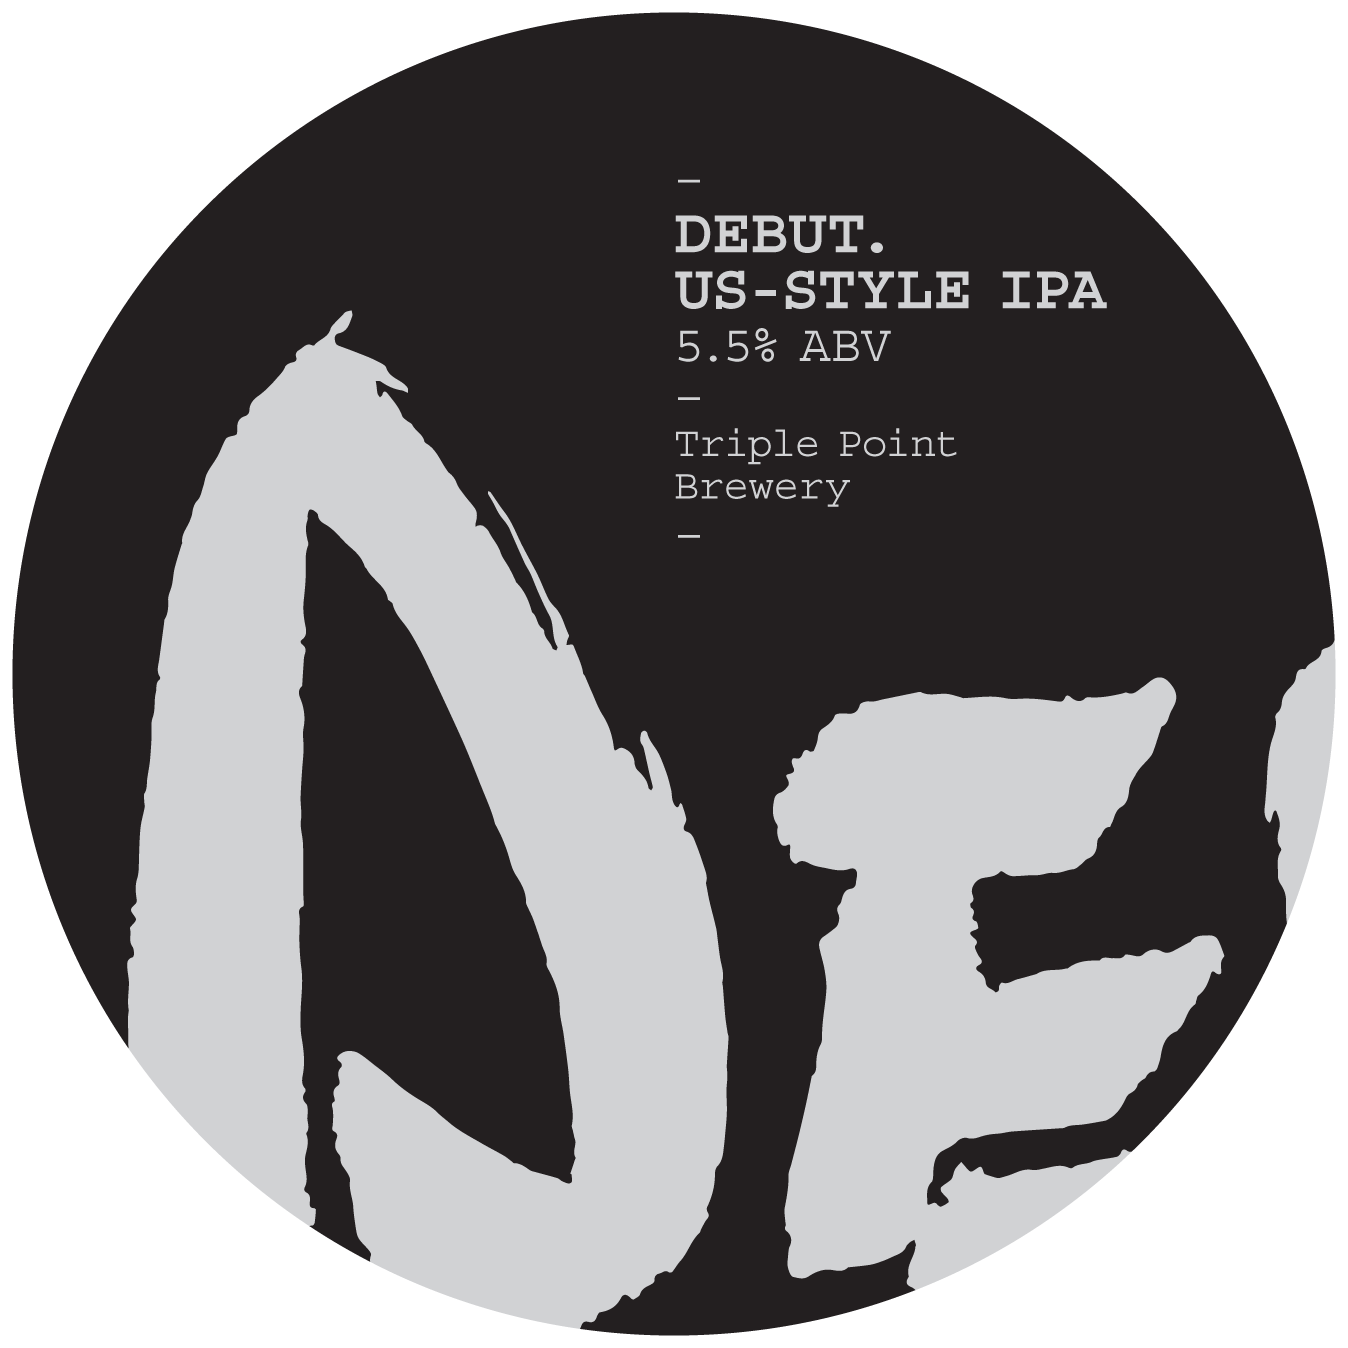 Triple Point_Debut US Style IPA 112mm.png